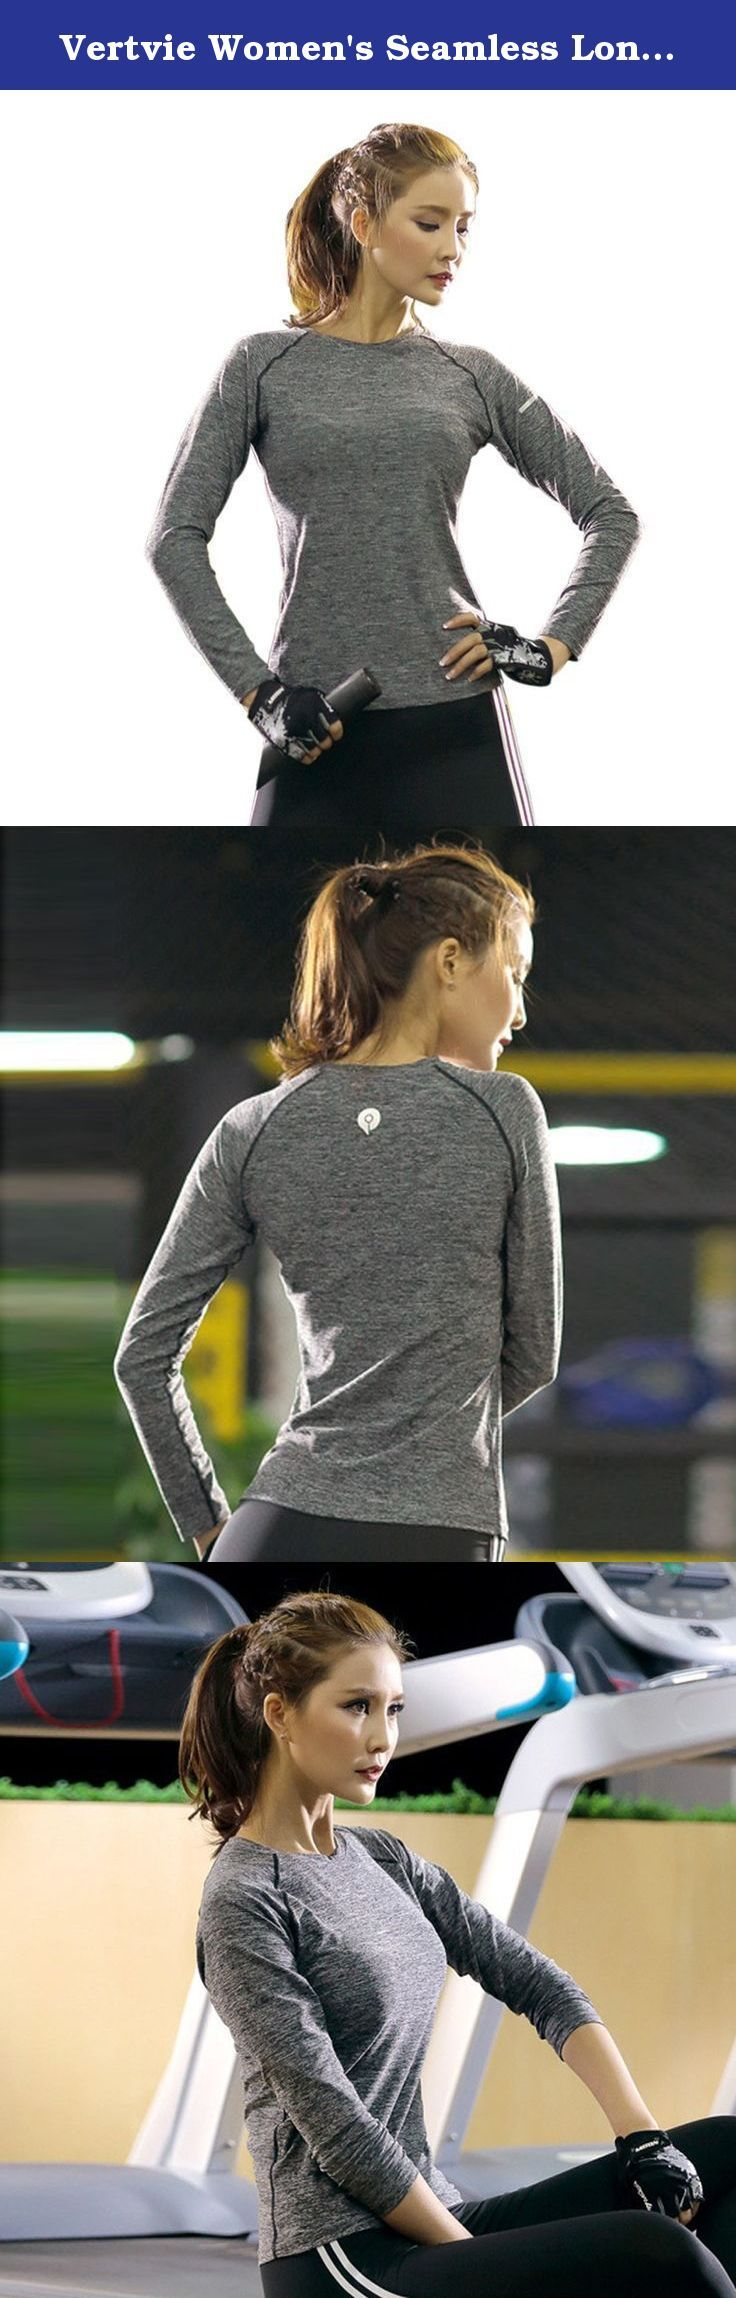 Vertvie Women's Seamless Long Sleeve Quick Dry Yoga Fitness Sports T-shirt Tops. Special mixed color, make you look special.